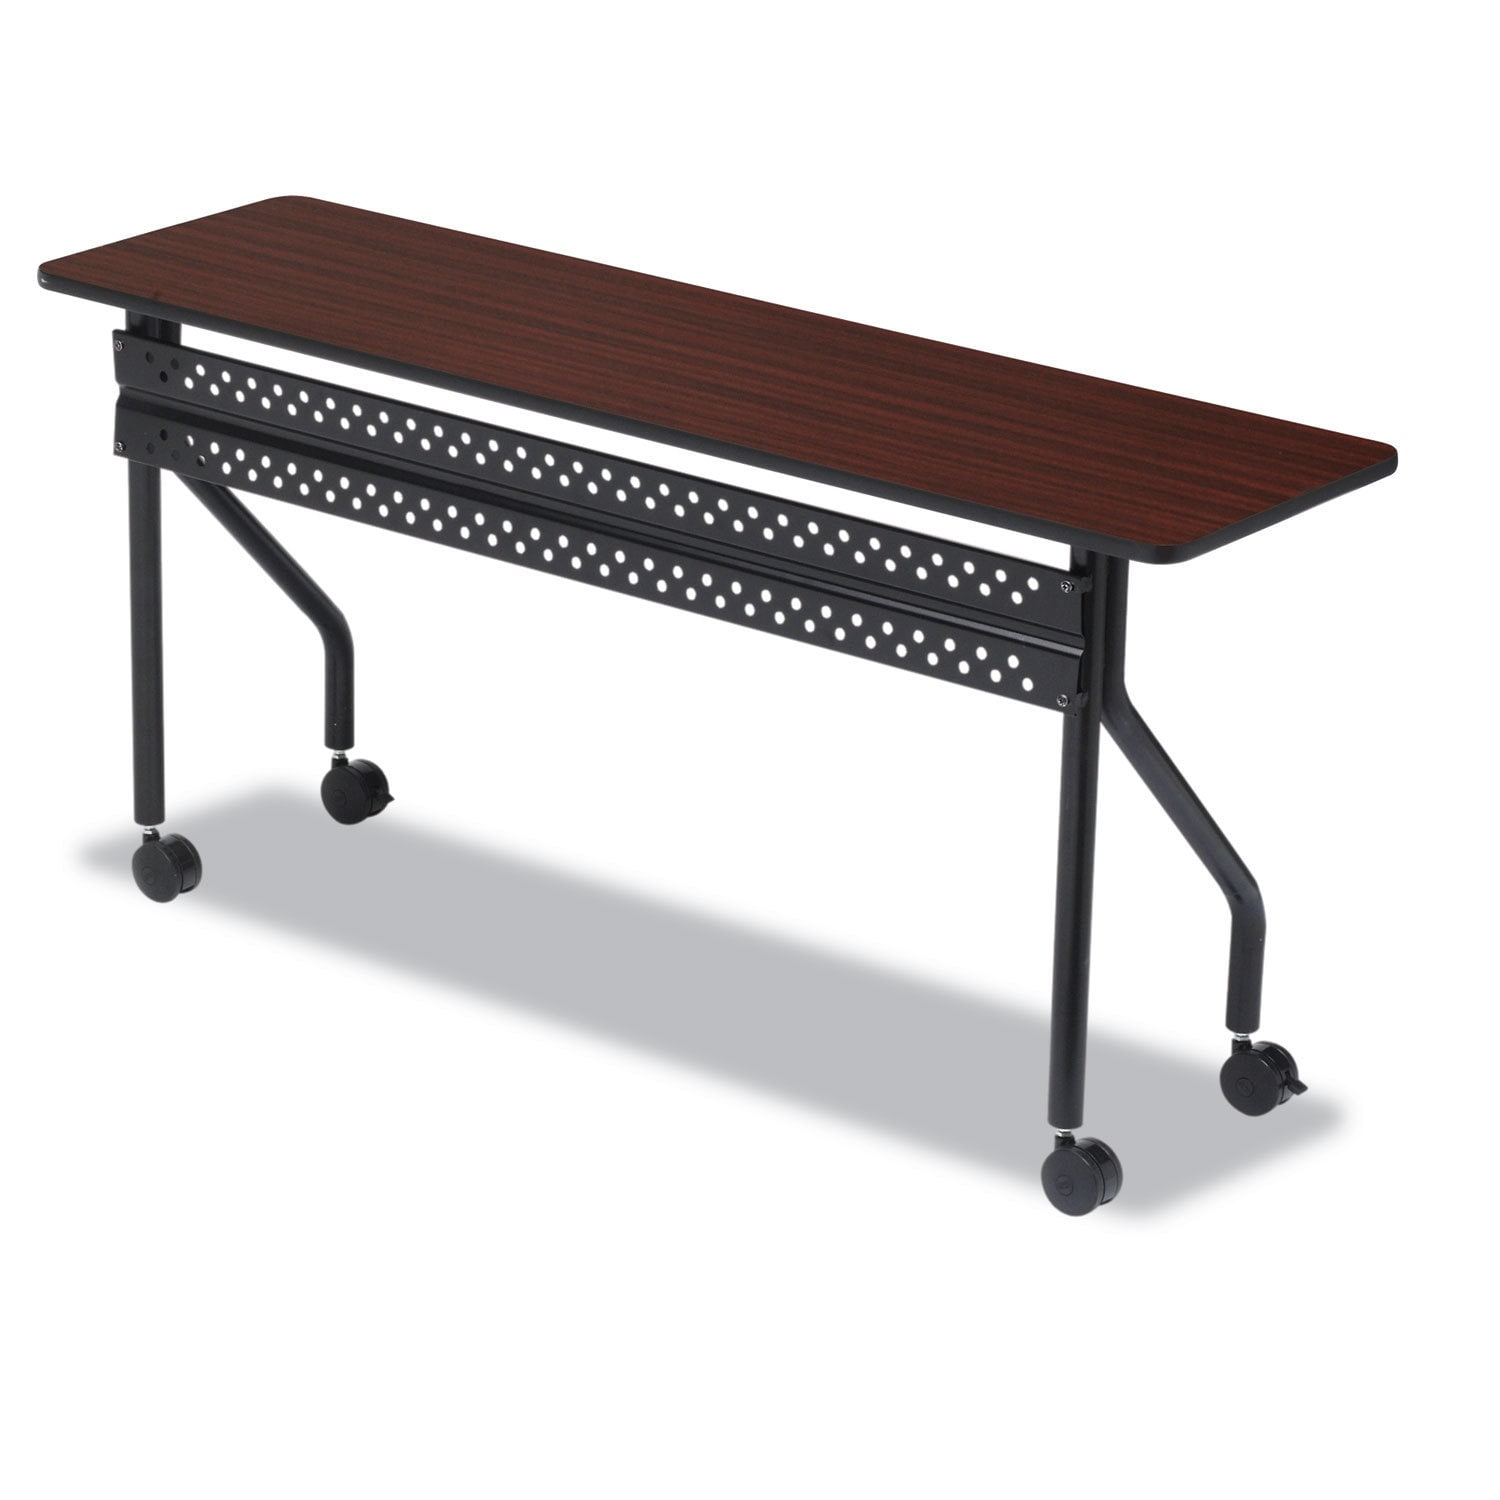 Officeworks Desks For Sale Iceberg Officeworks Mobile Training Table Rectangular 72 Inch Wide X 18 Inch Deep X 29 Inch High Mahogany Black